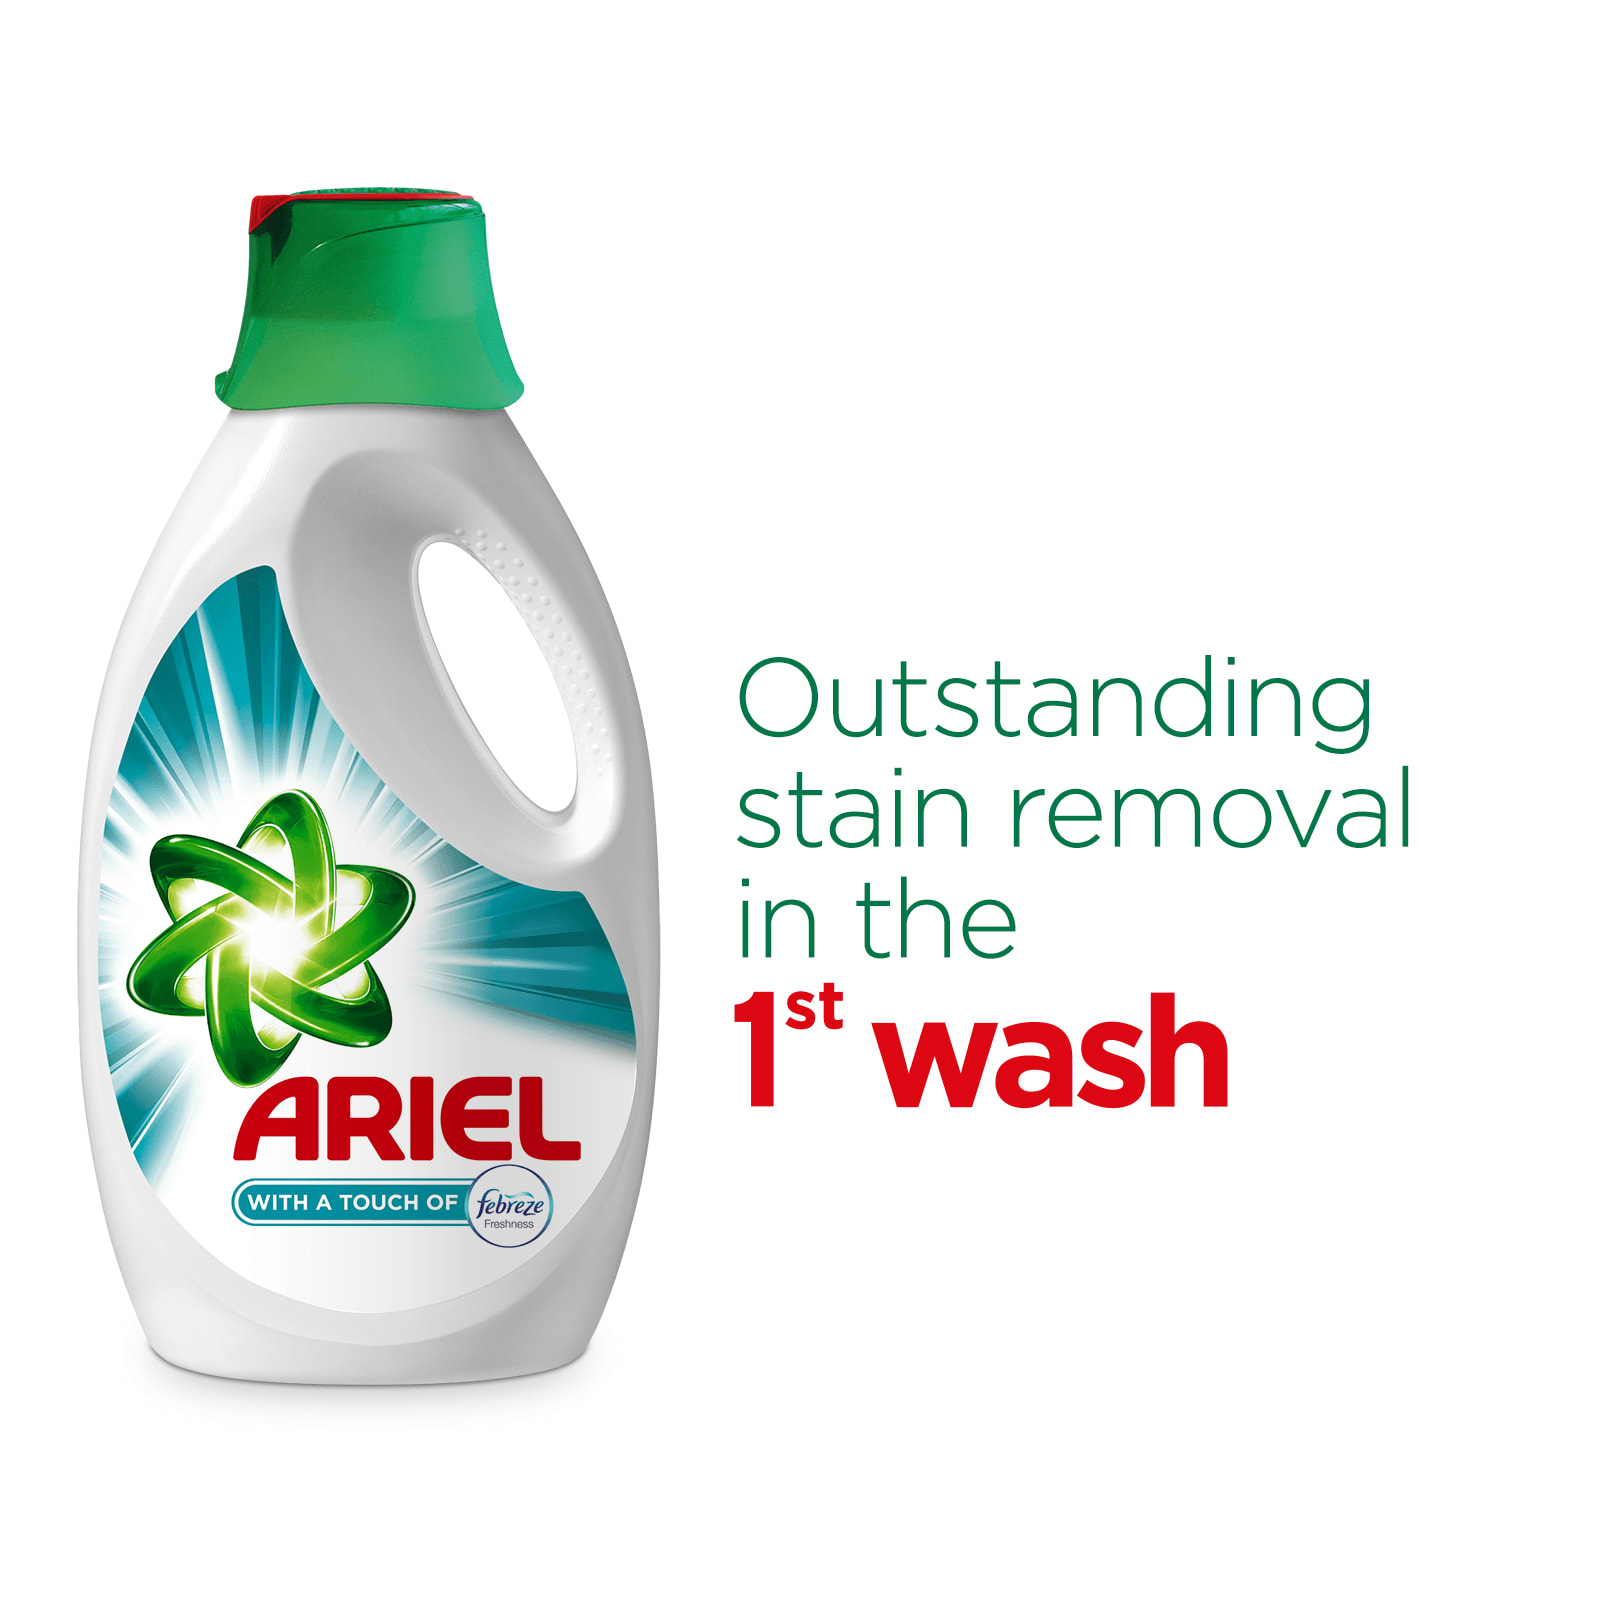 Outstanding stain removal in the 1st wash